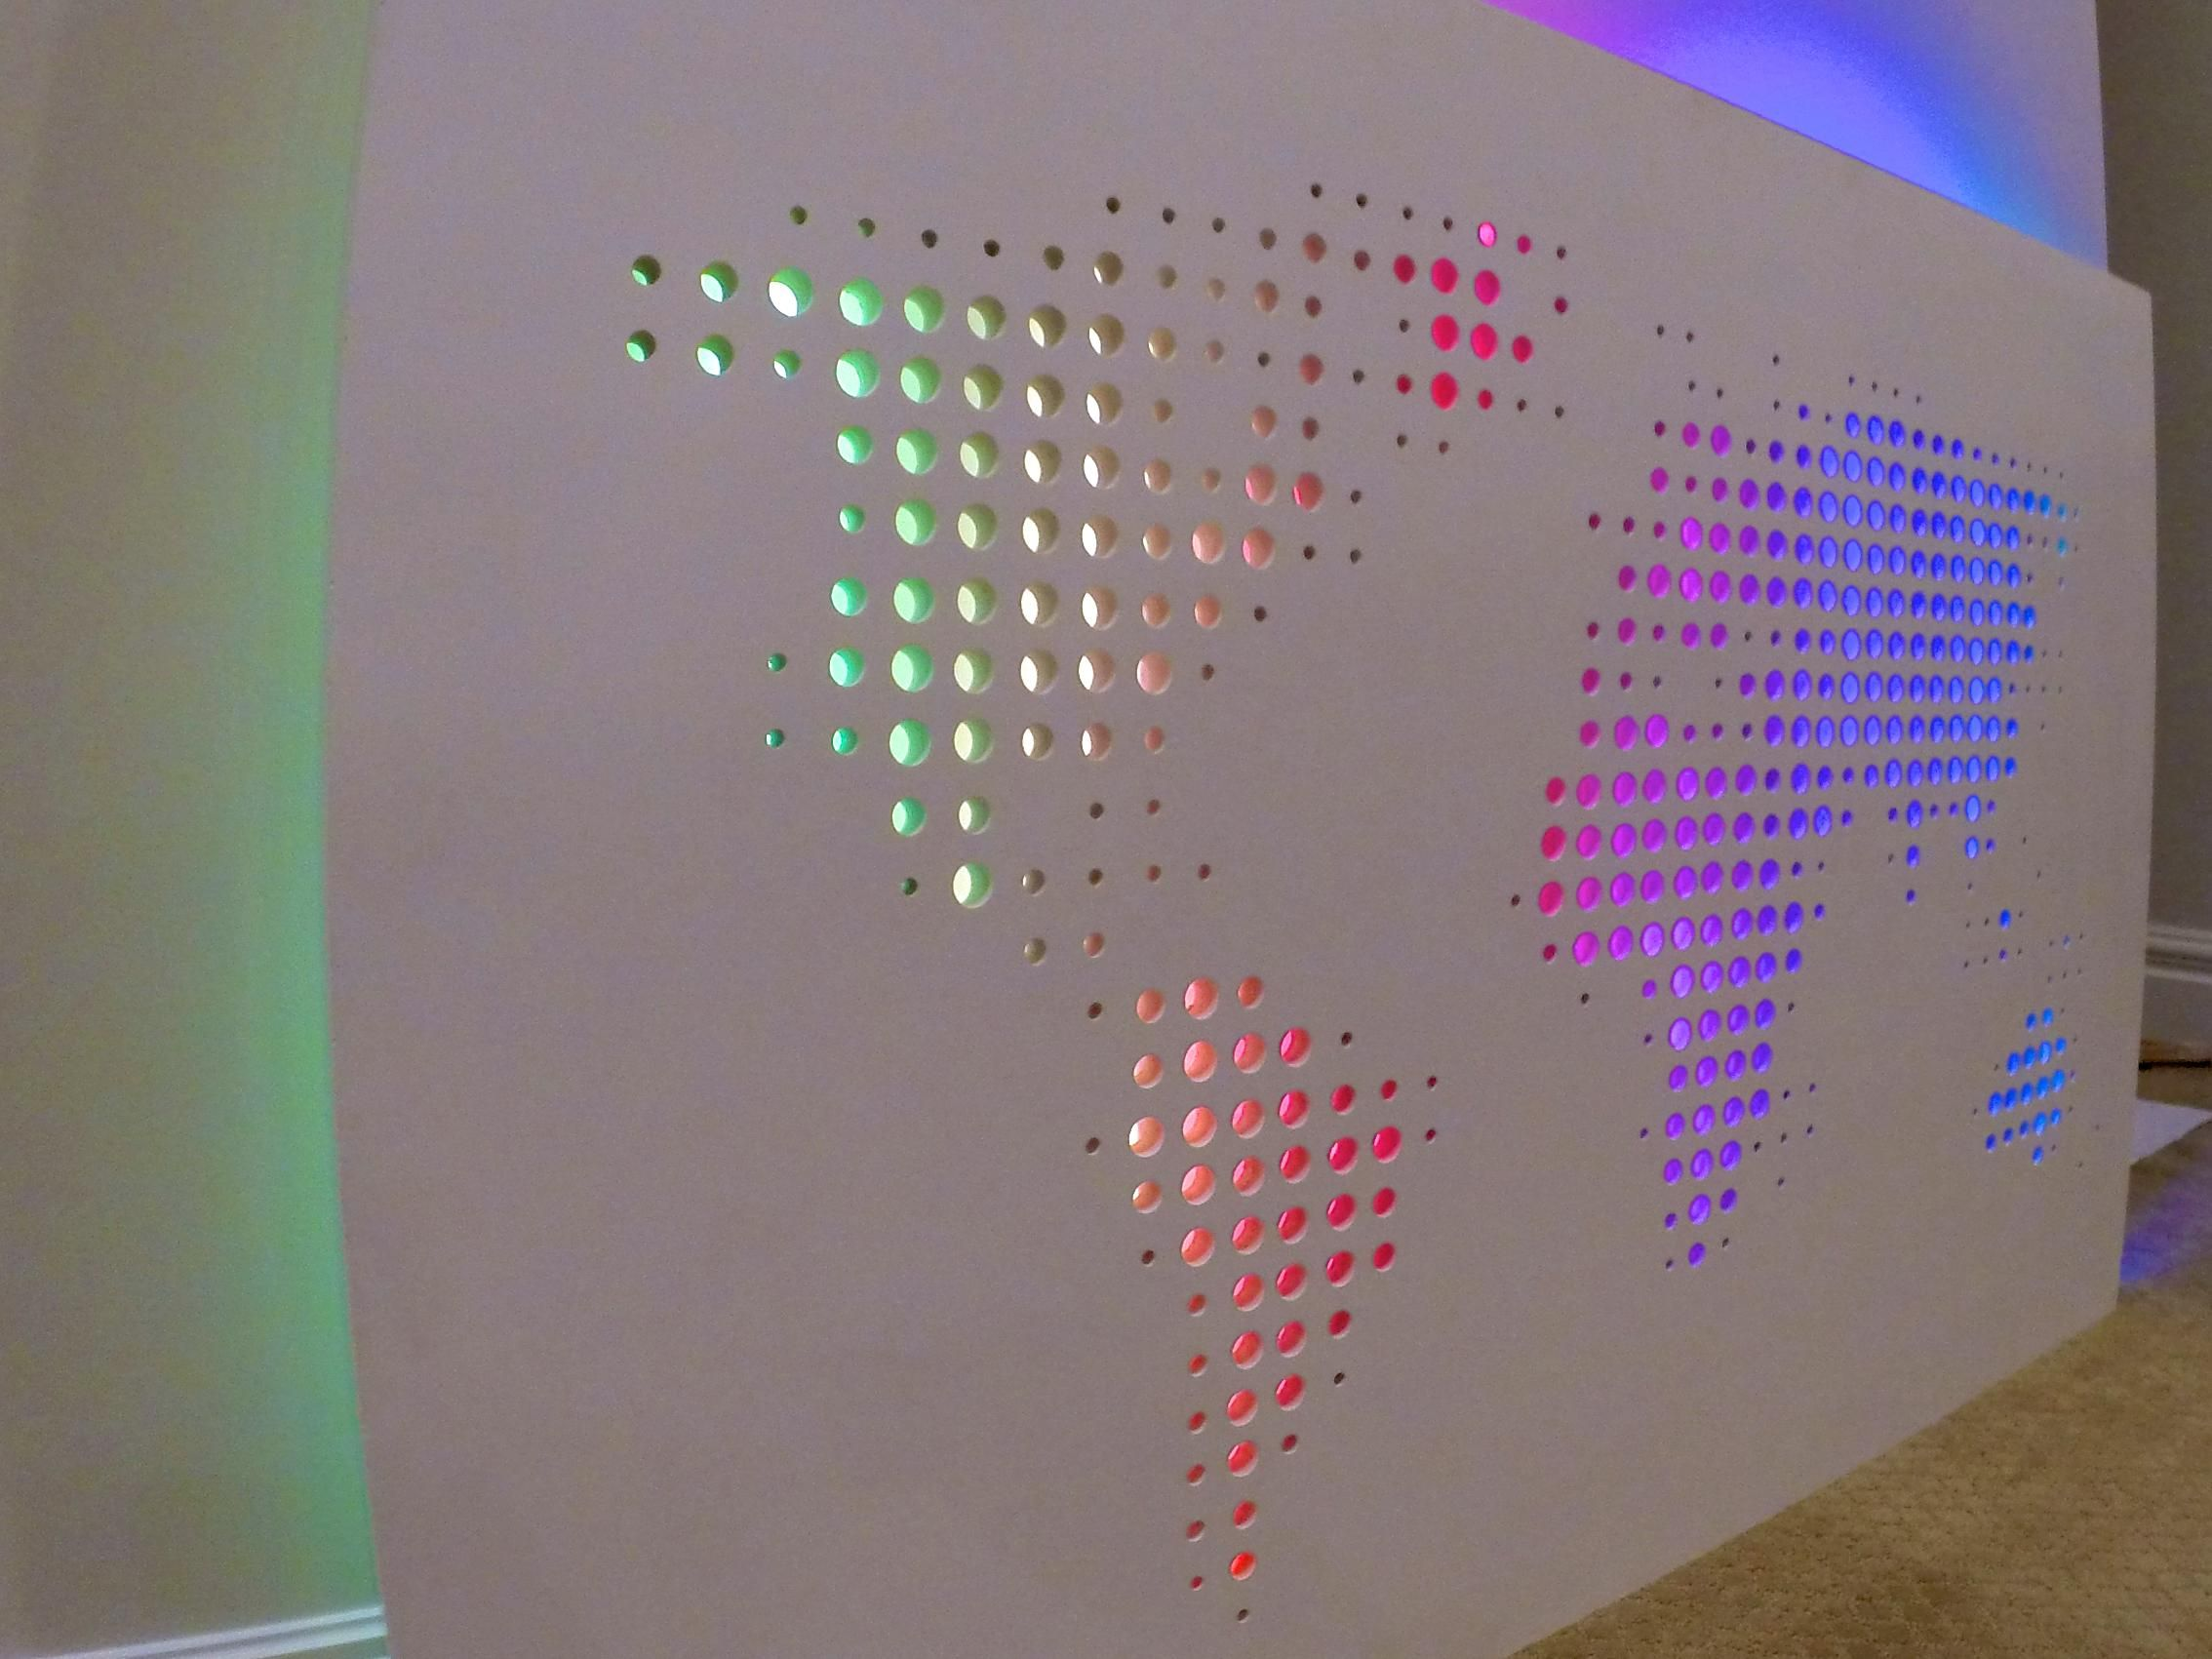 Neo pixel infinity mirror enviral design - Arduino Powered Clock Shows Where On Earth The Sun Is Shining